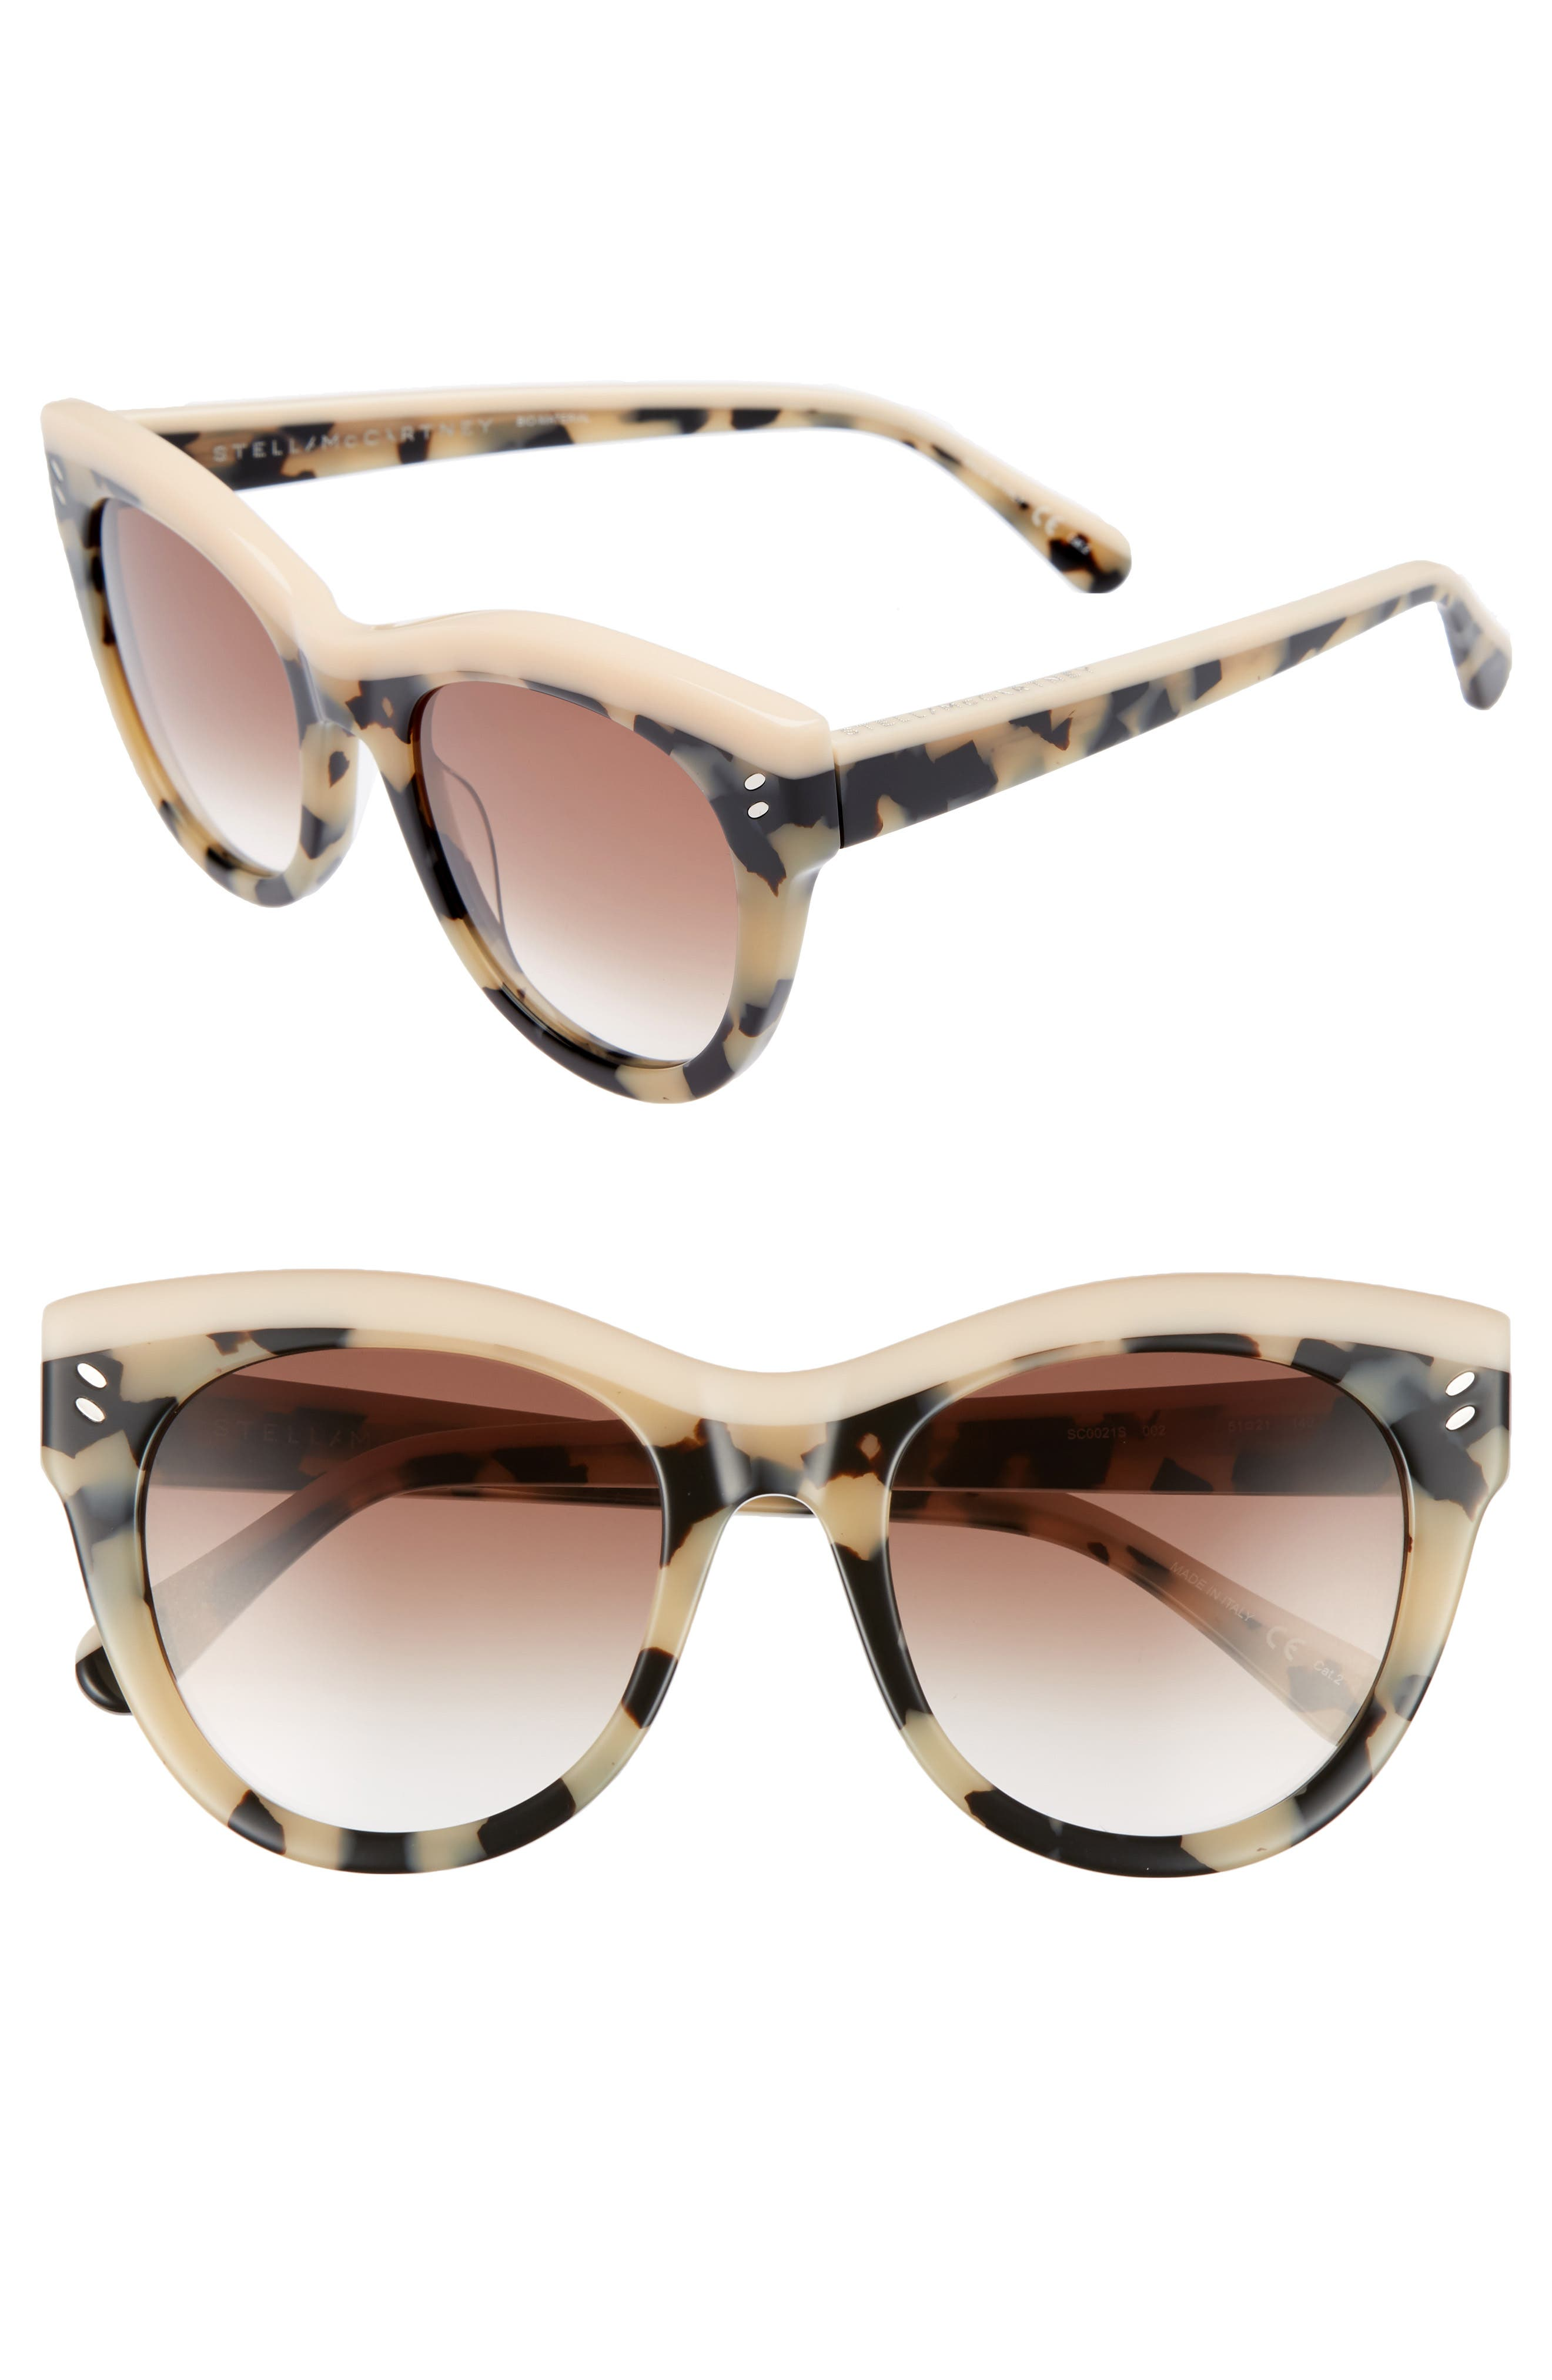 51mm Cat Eye Sunglasses,                             Main thumbnail 2, color,